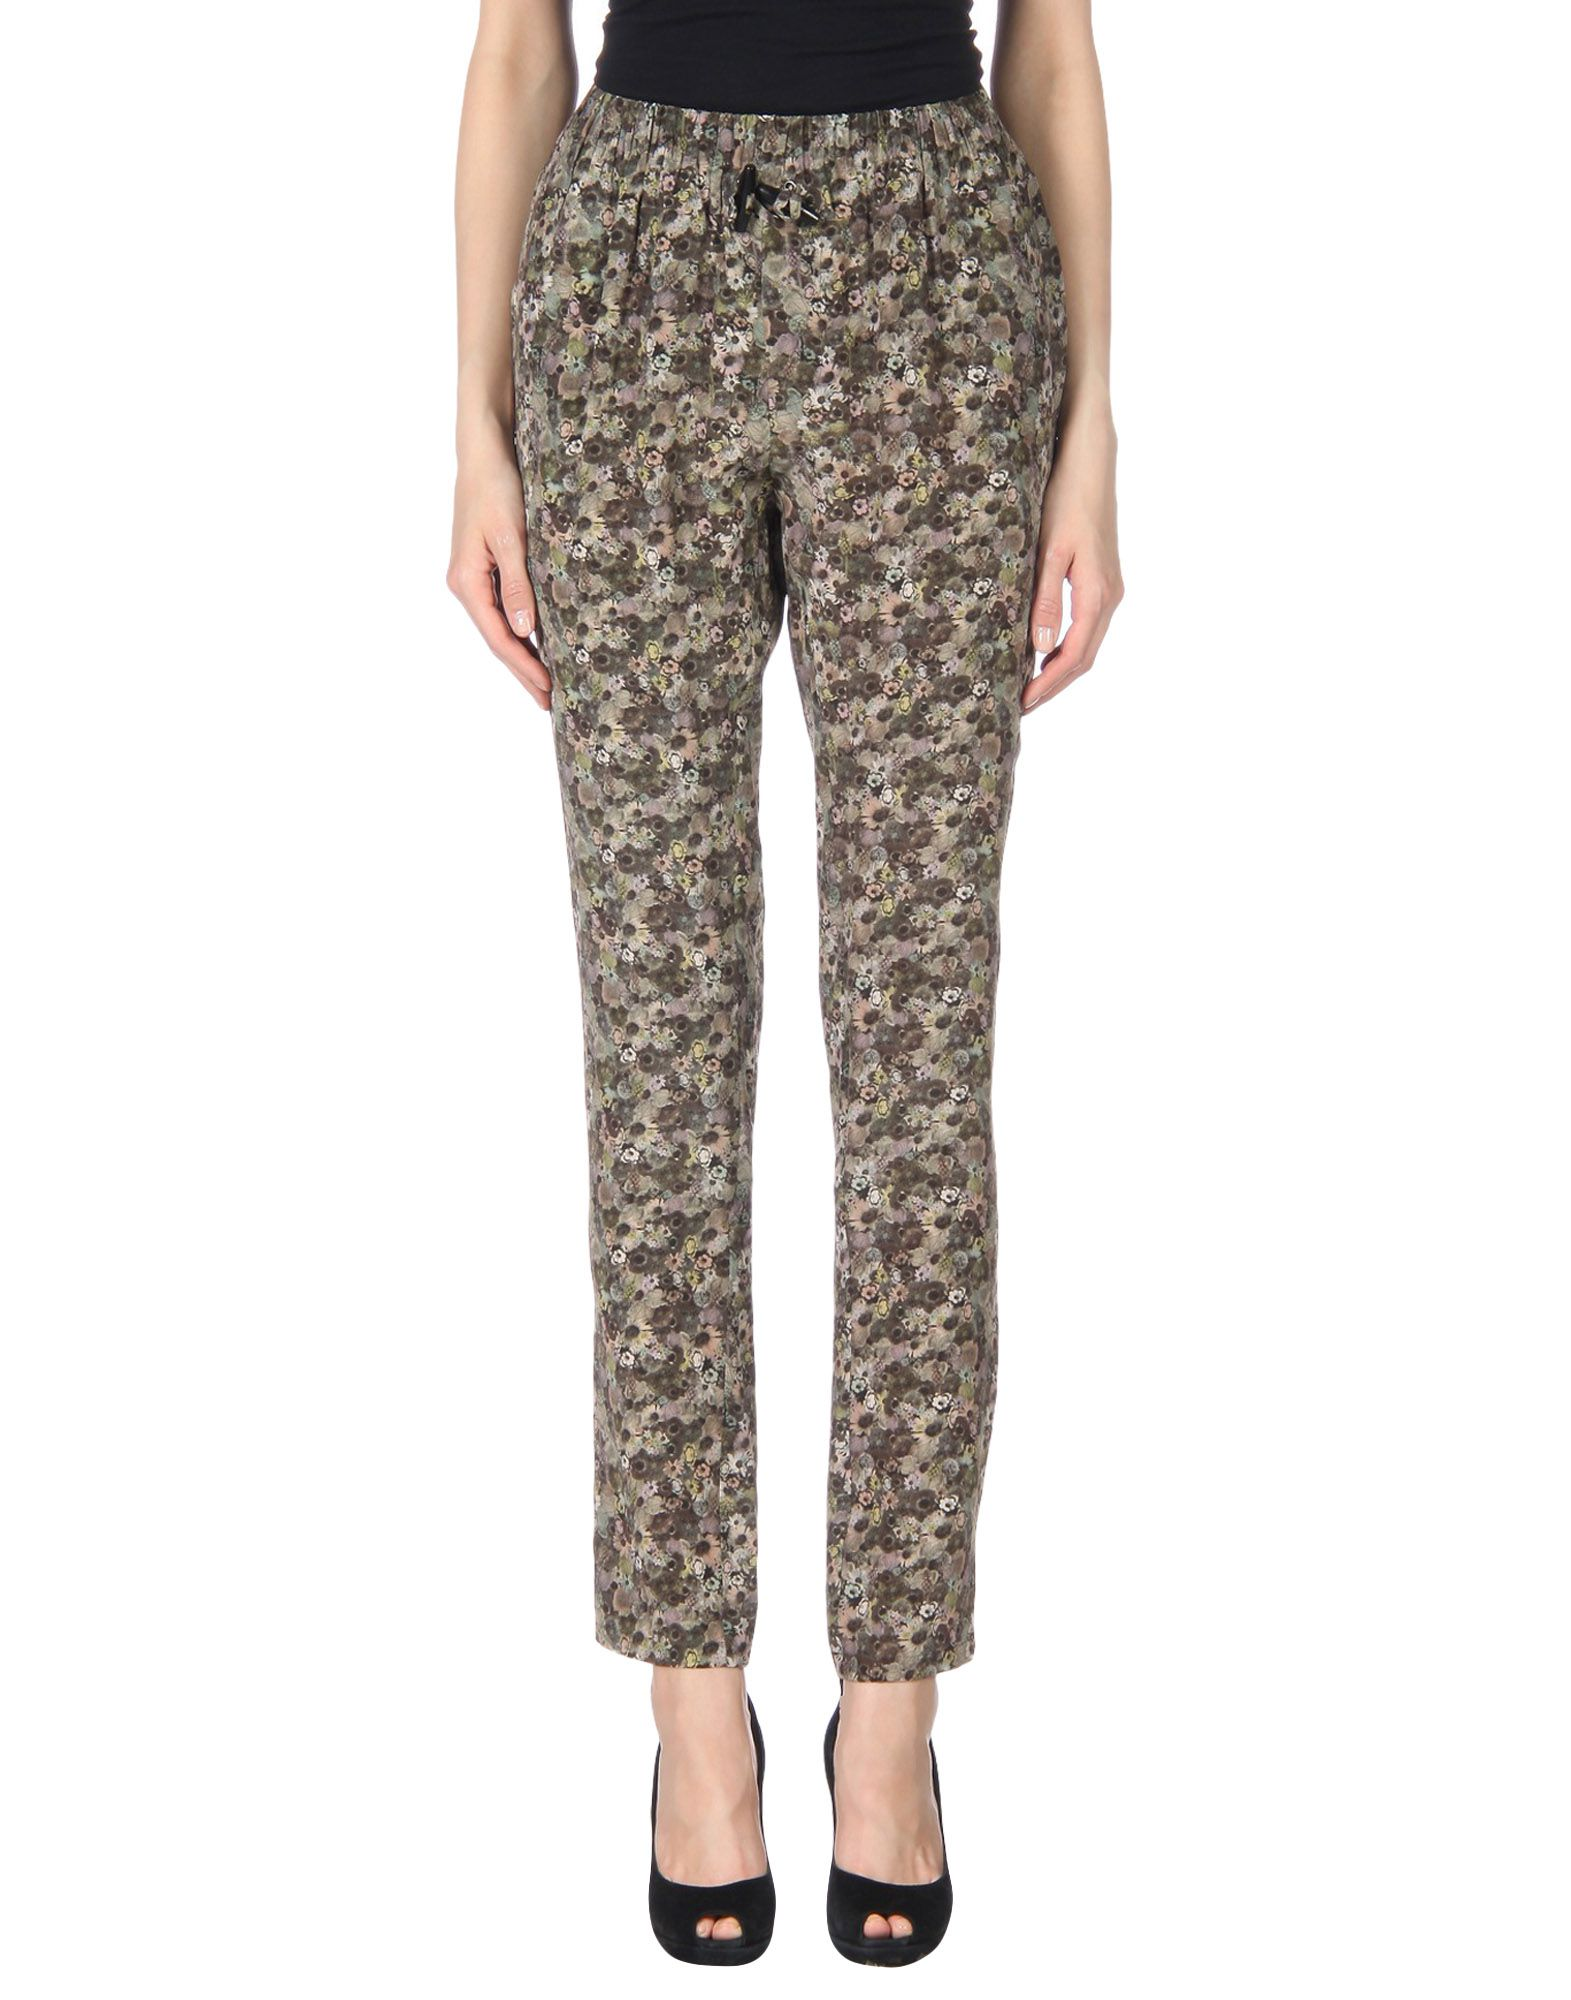 EMMA COOK Casual Pants in Brown